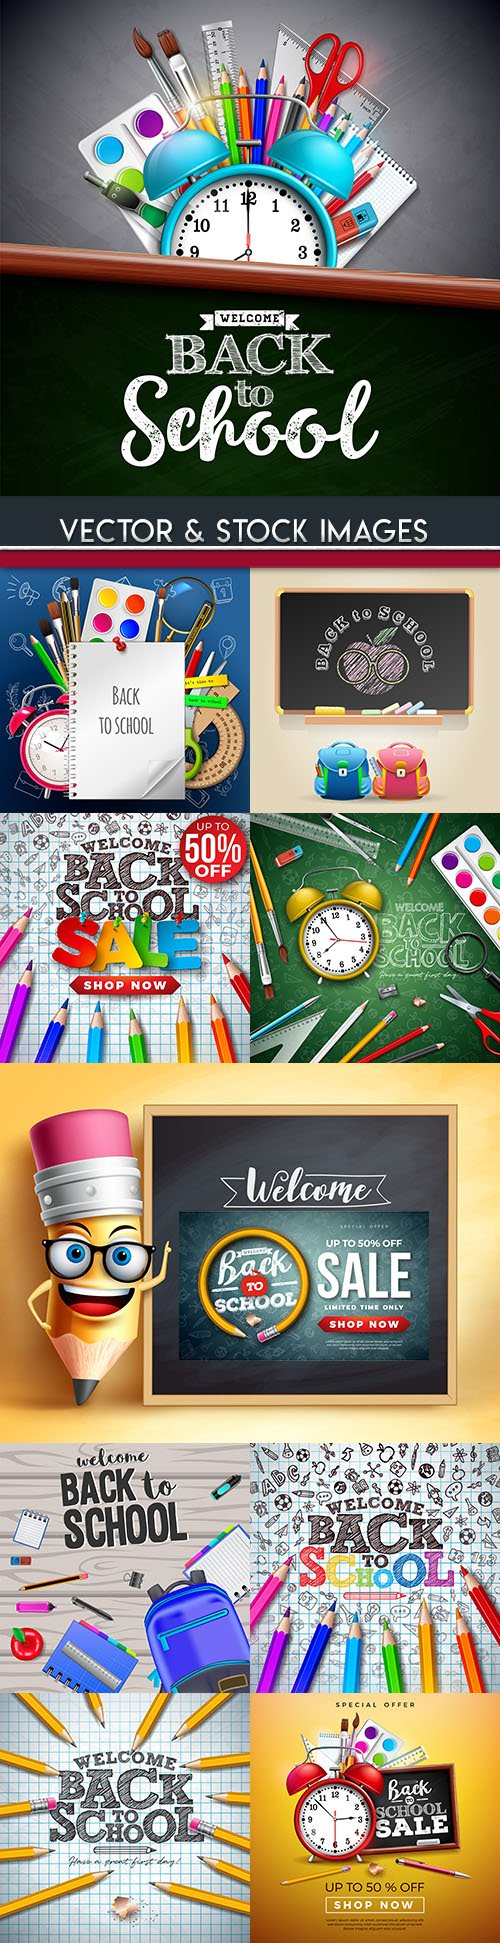 Back to school and accessories collection illustrations 22